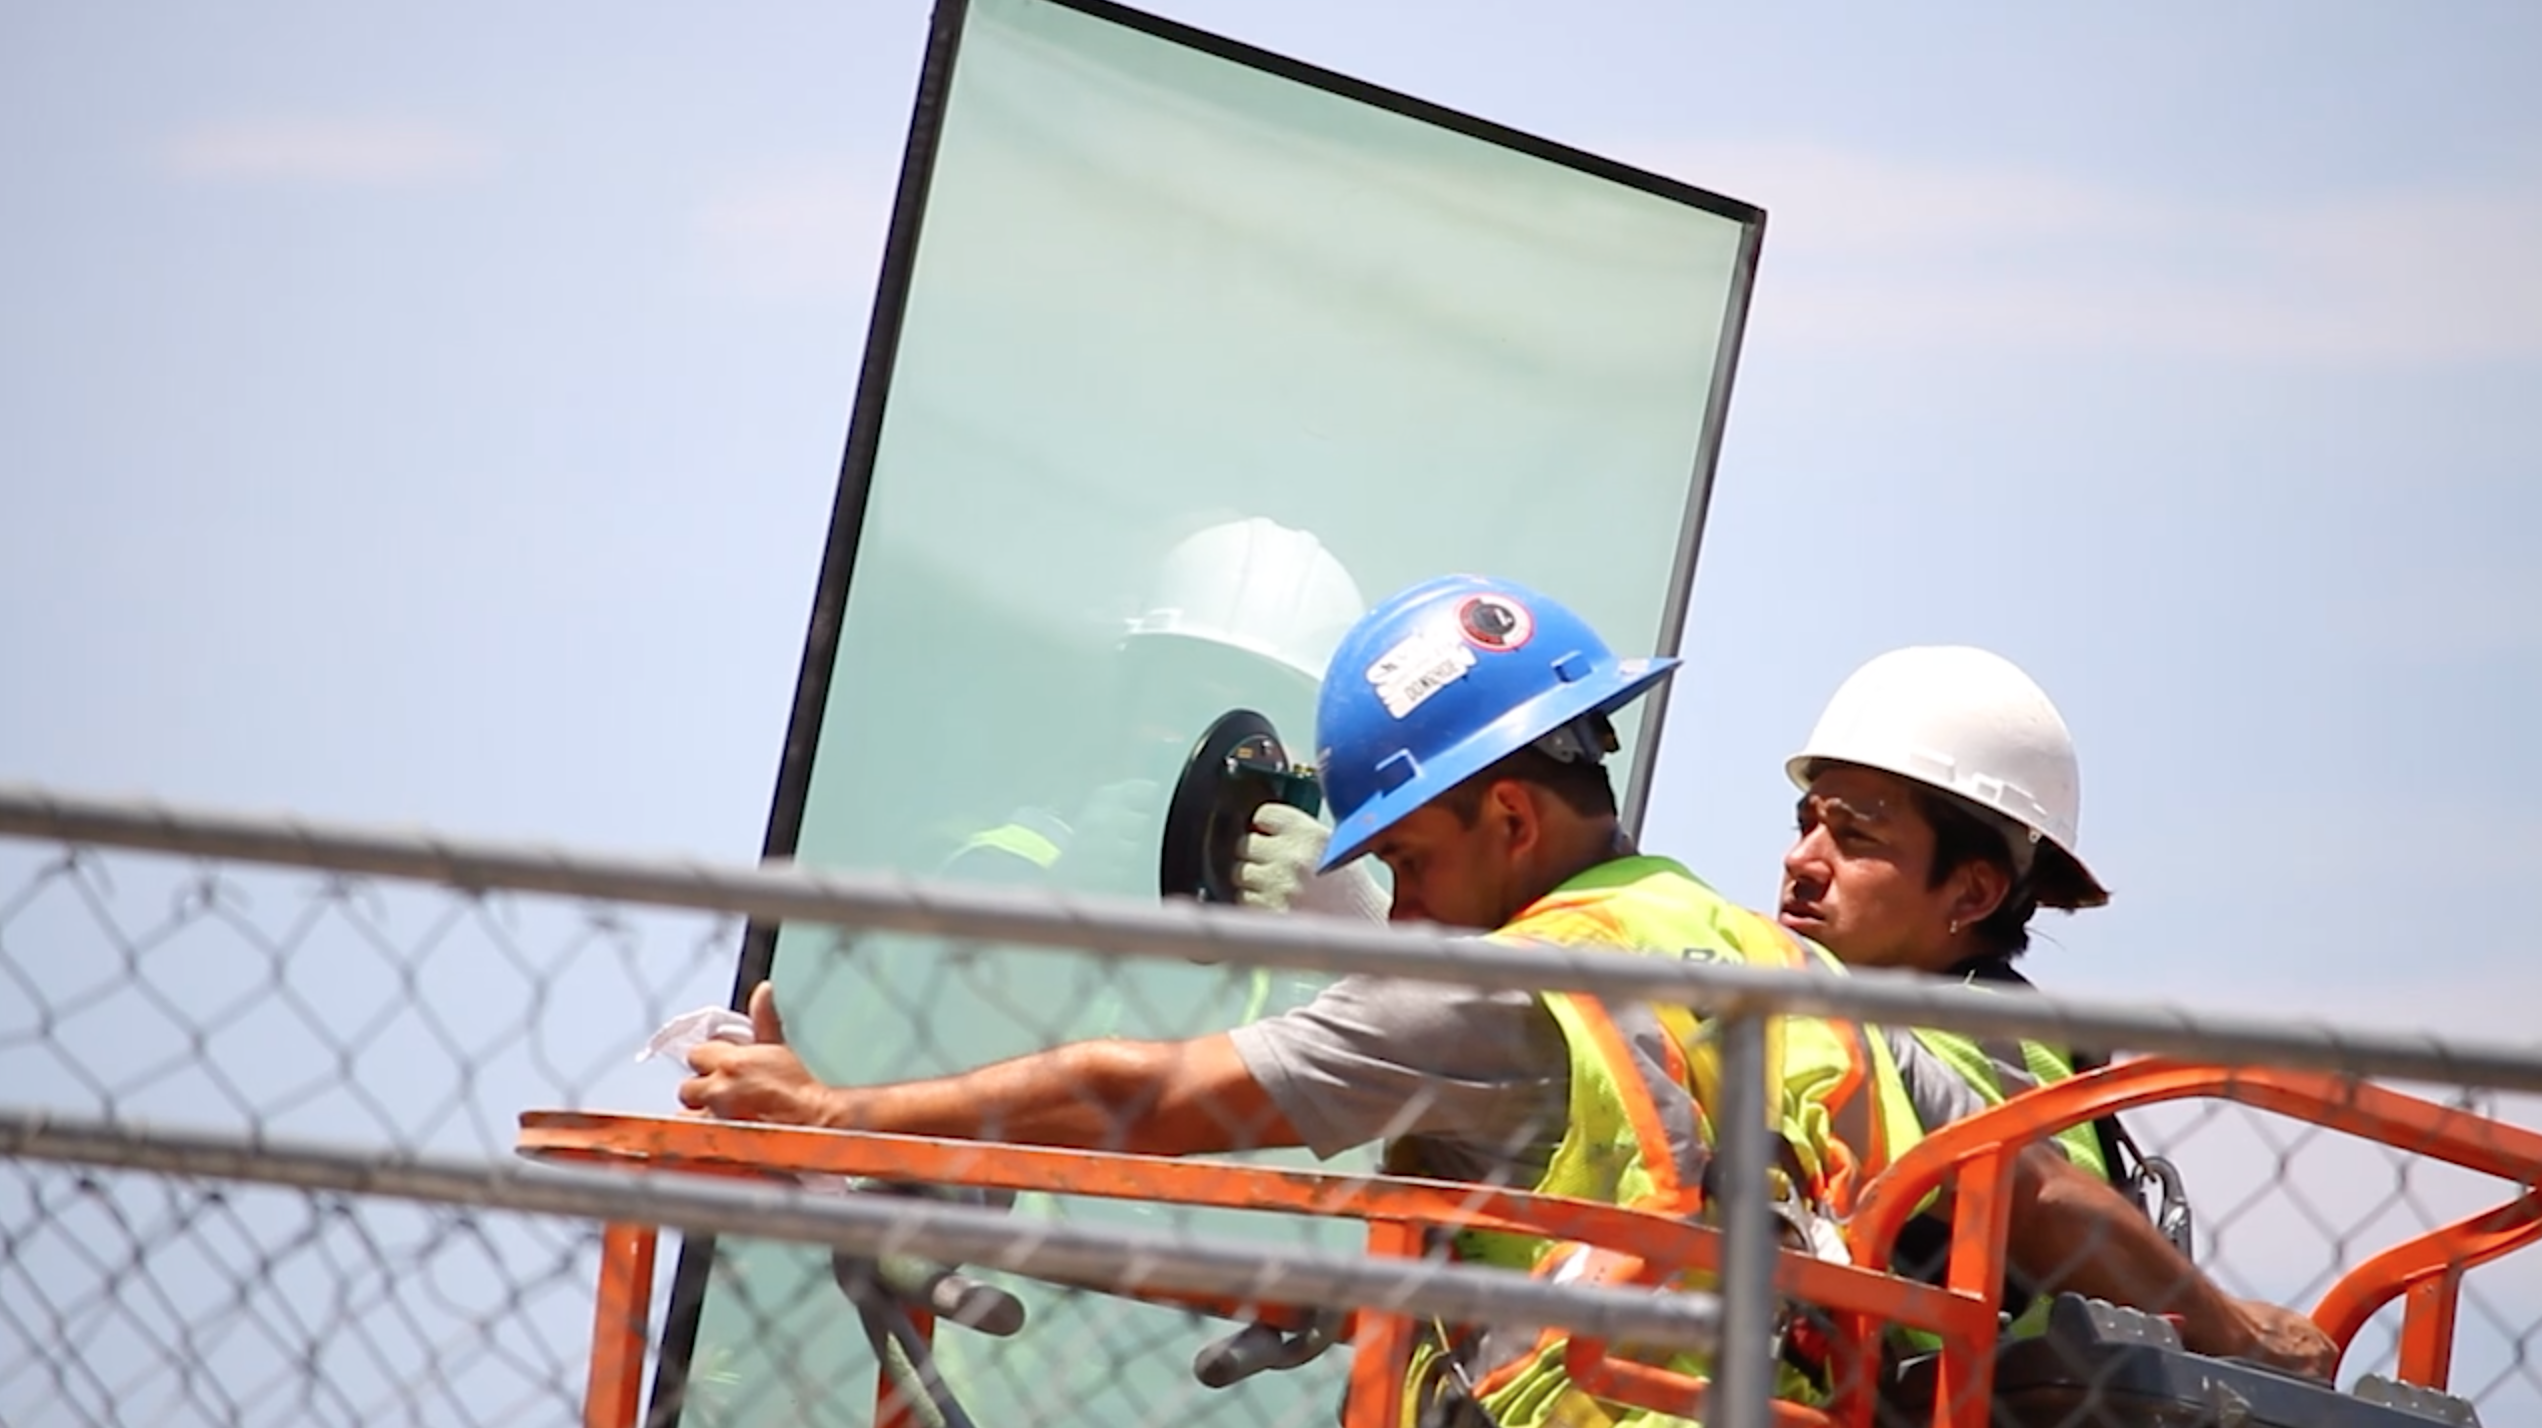 Young Hispanic workers for small construction firms face the most occupational dangers, report says